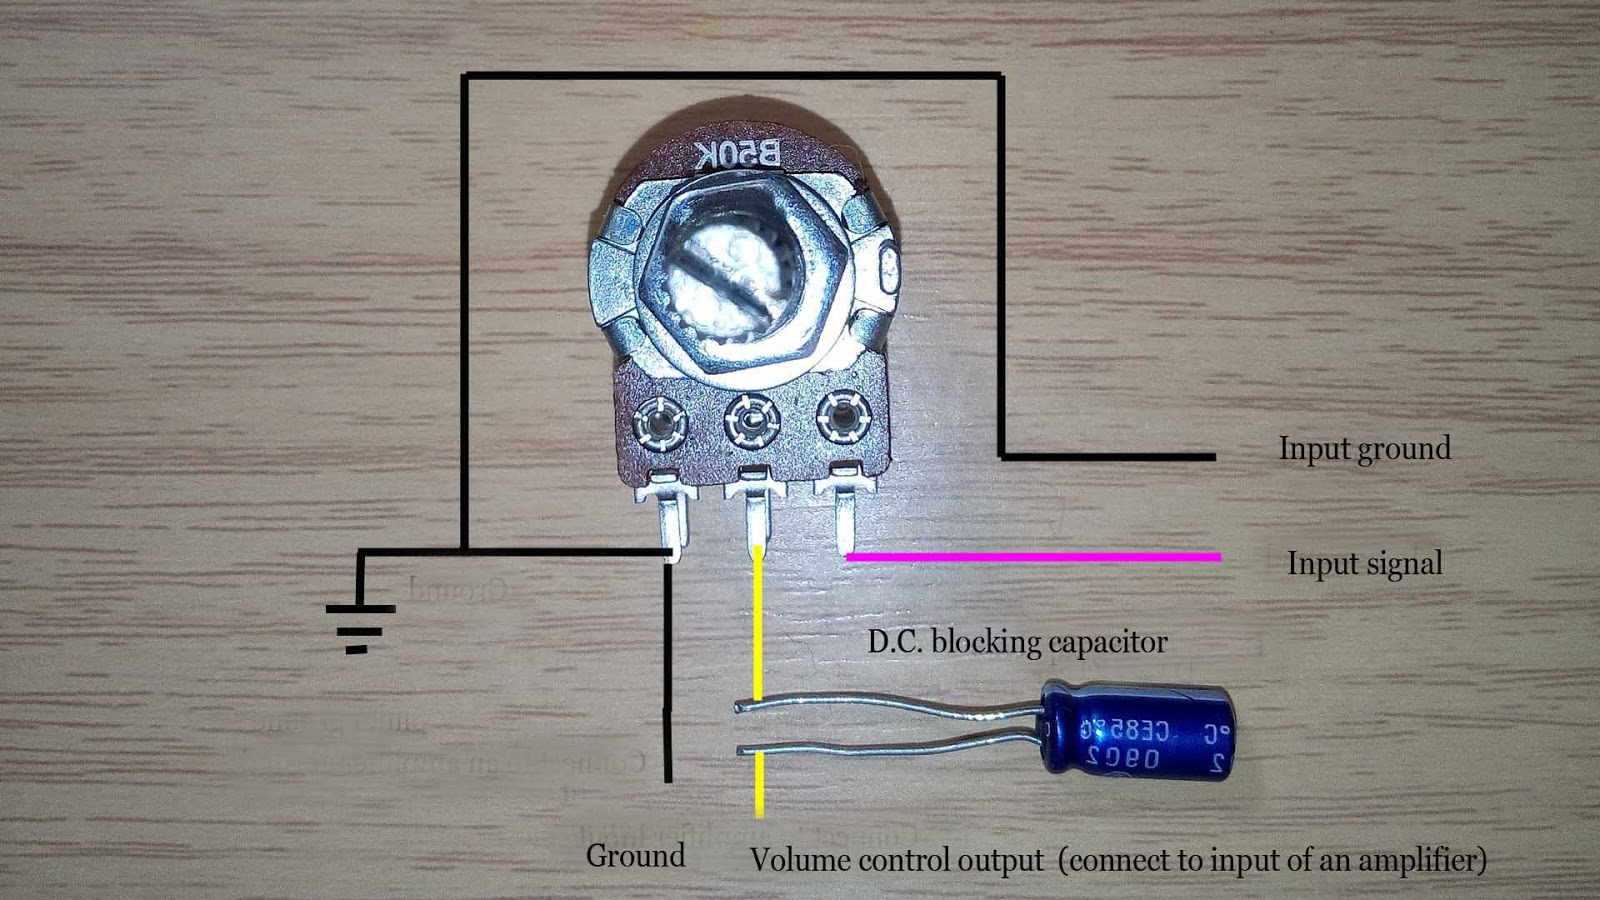 how to connect volume control to an amplifier power wiring diagram volume control wiring diagram [ 1600 x 900 Pixel ]